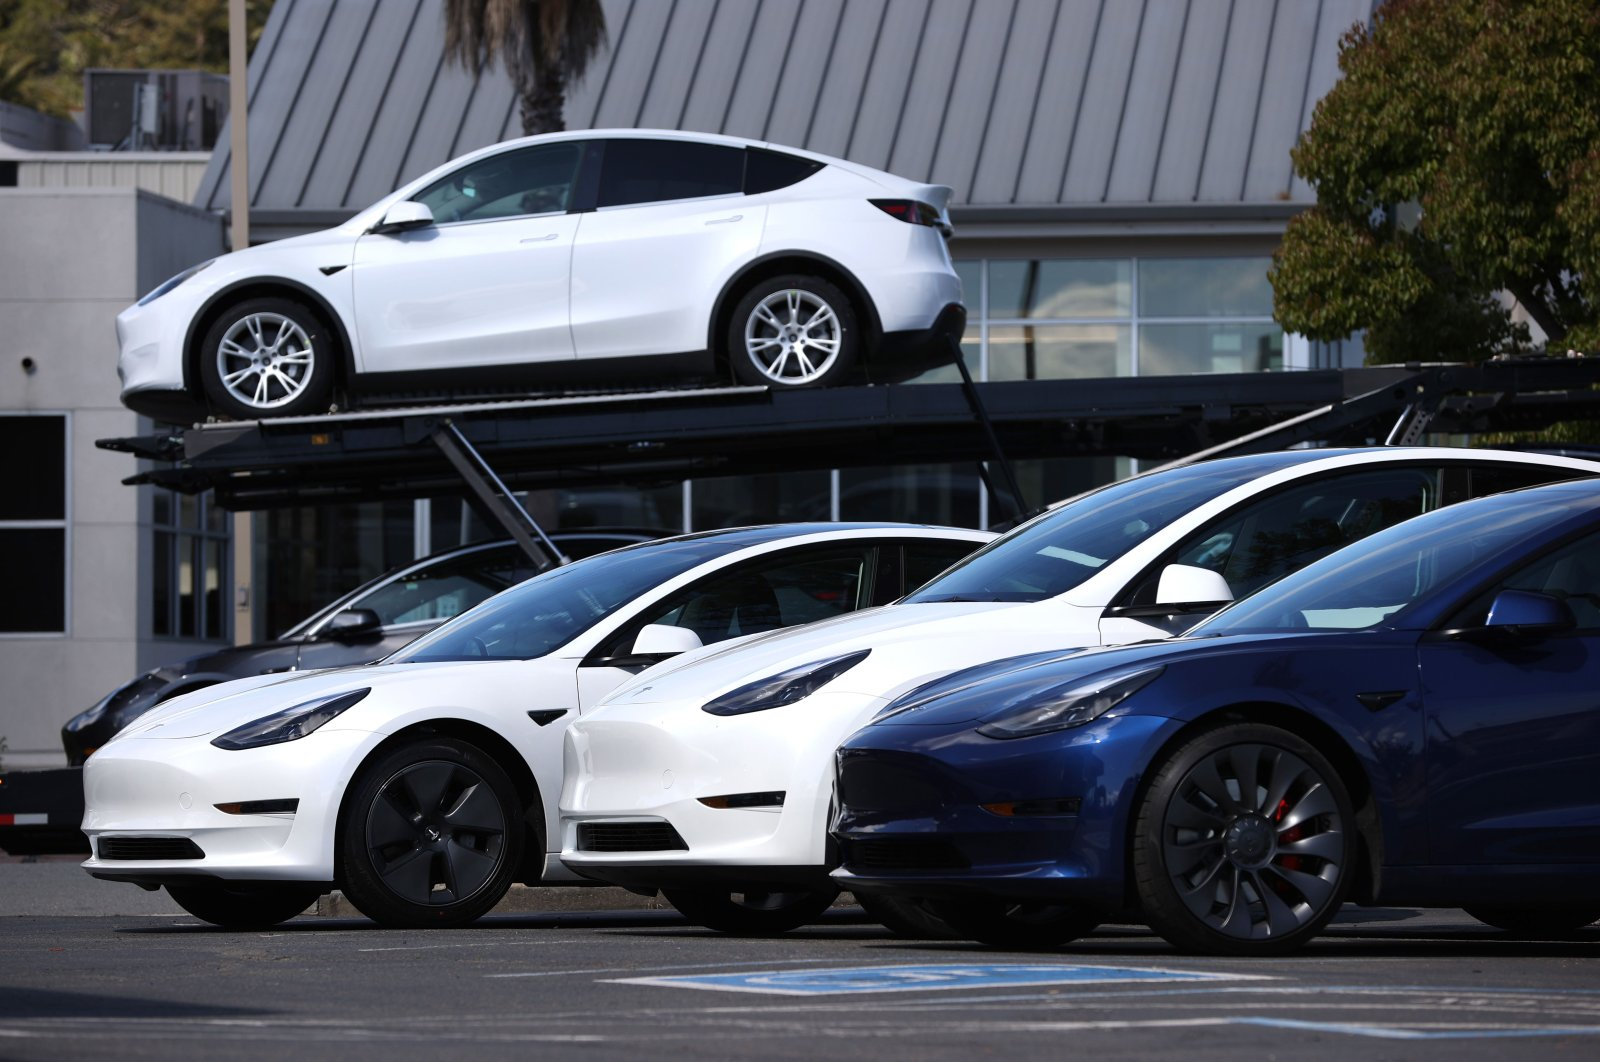 Brand new Tesla cars sit in front of a Tesla dealership in Corte Madera, California, U.S., April 26, 2021. (AFP Photo)